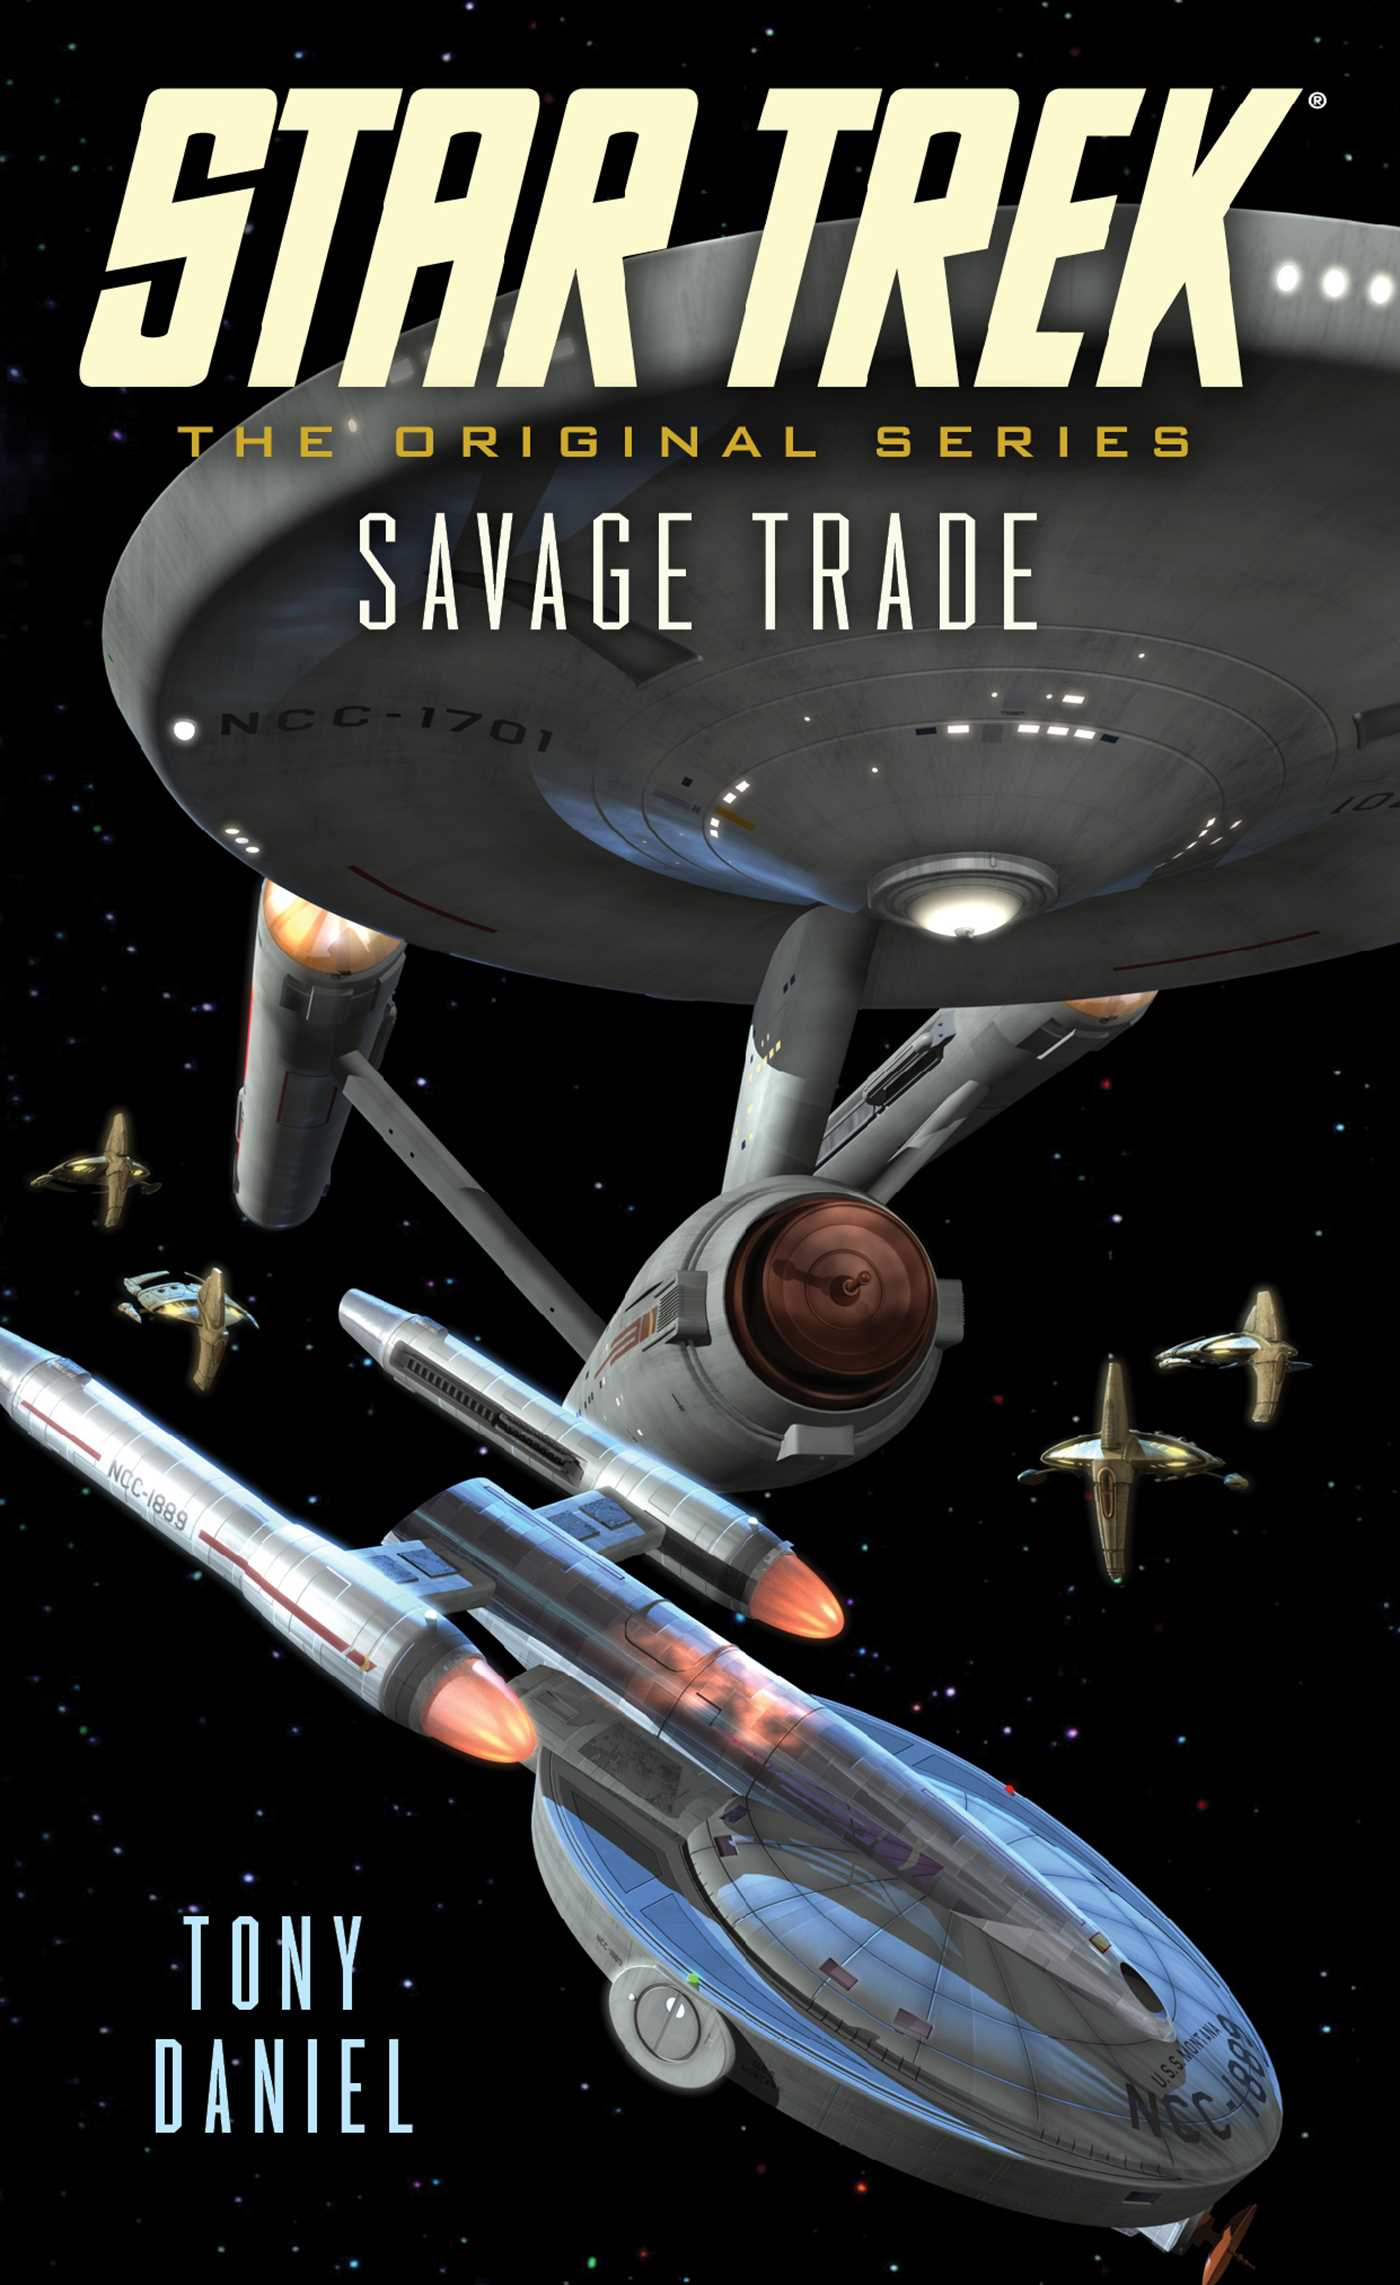 Star-trek-the-original-series-savage-trade-9781476765501_hr